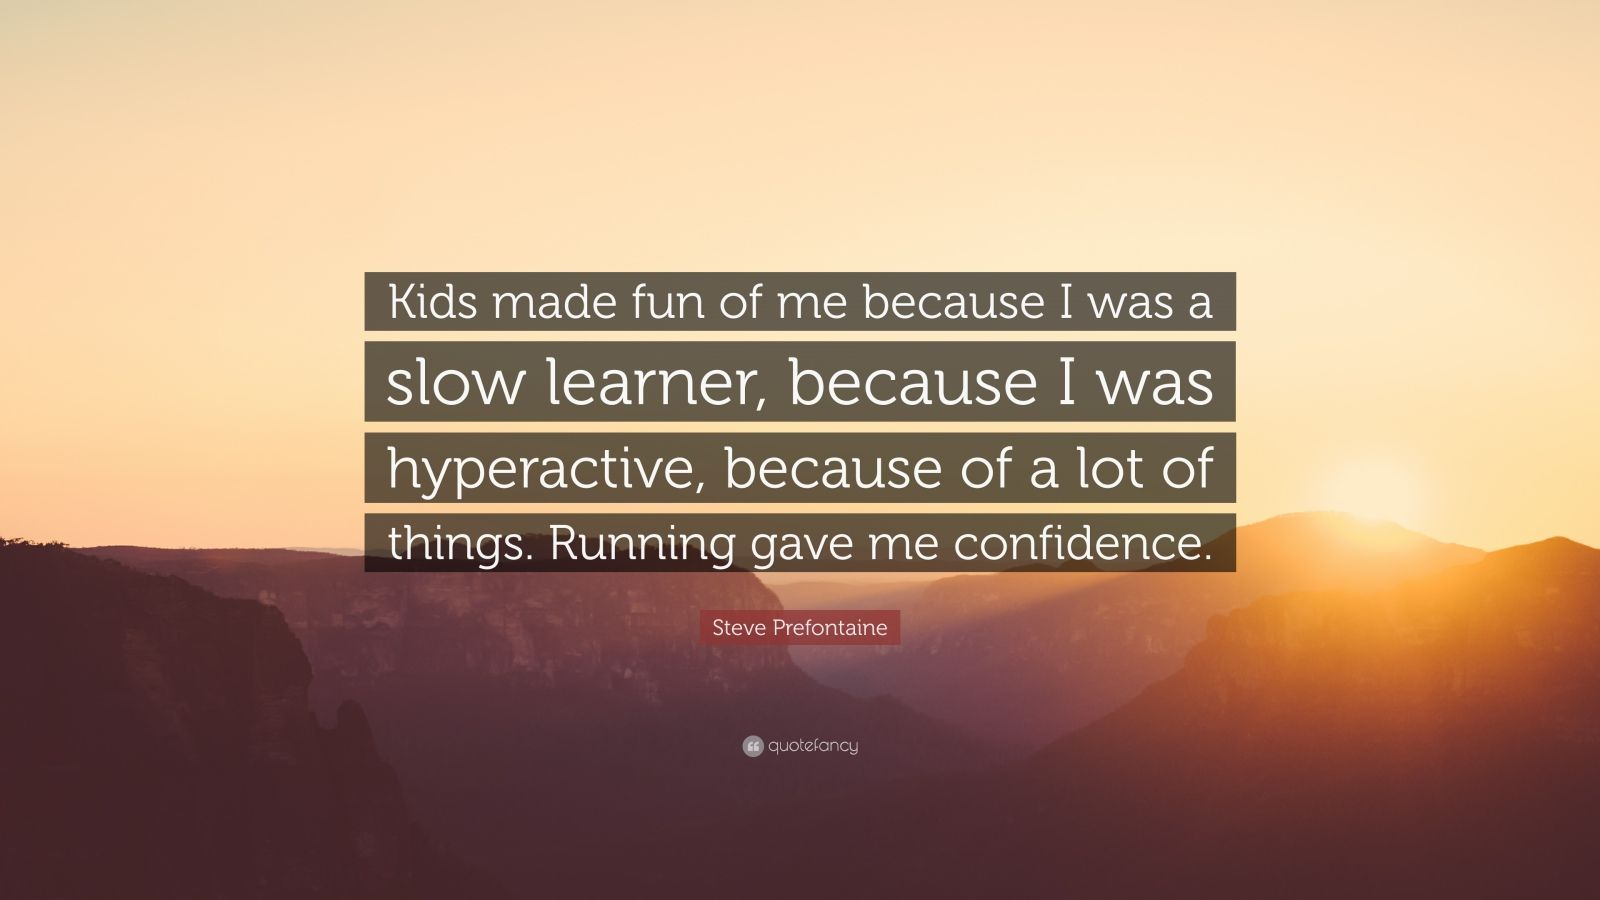 """Steve Prefontaine Quote: """"Kids made fun of me because I was a slow learner, because I was hyperactive, because of a lot of things. Running gave me confidence."""""""